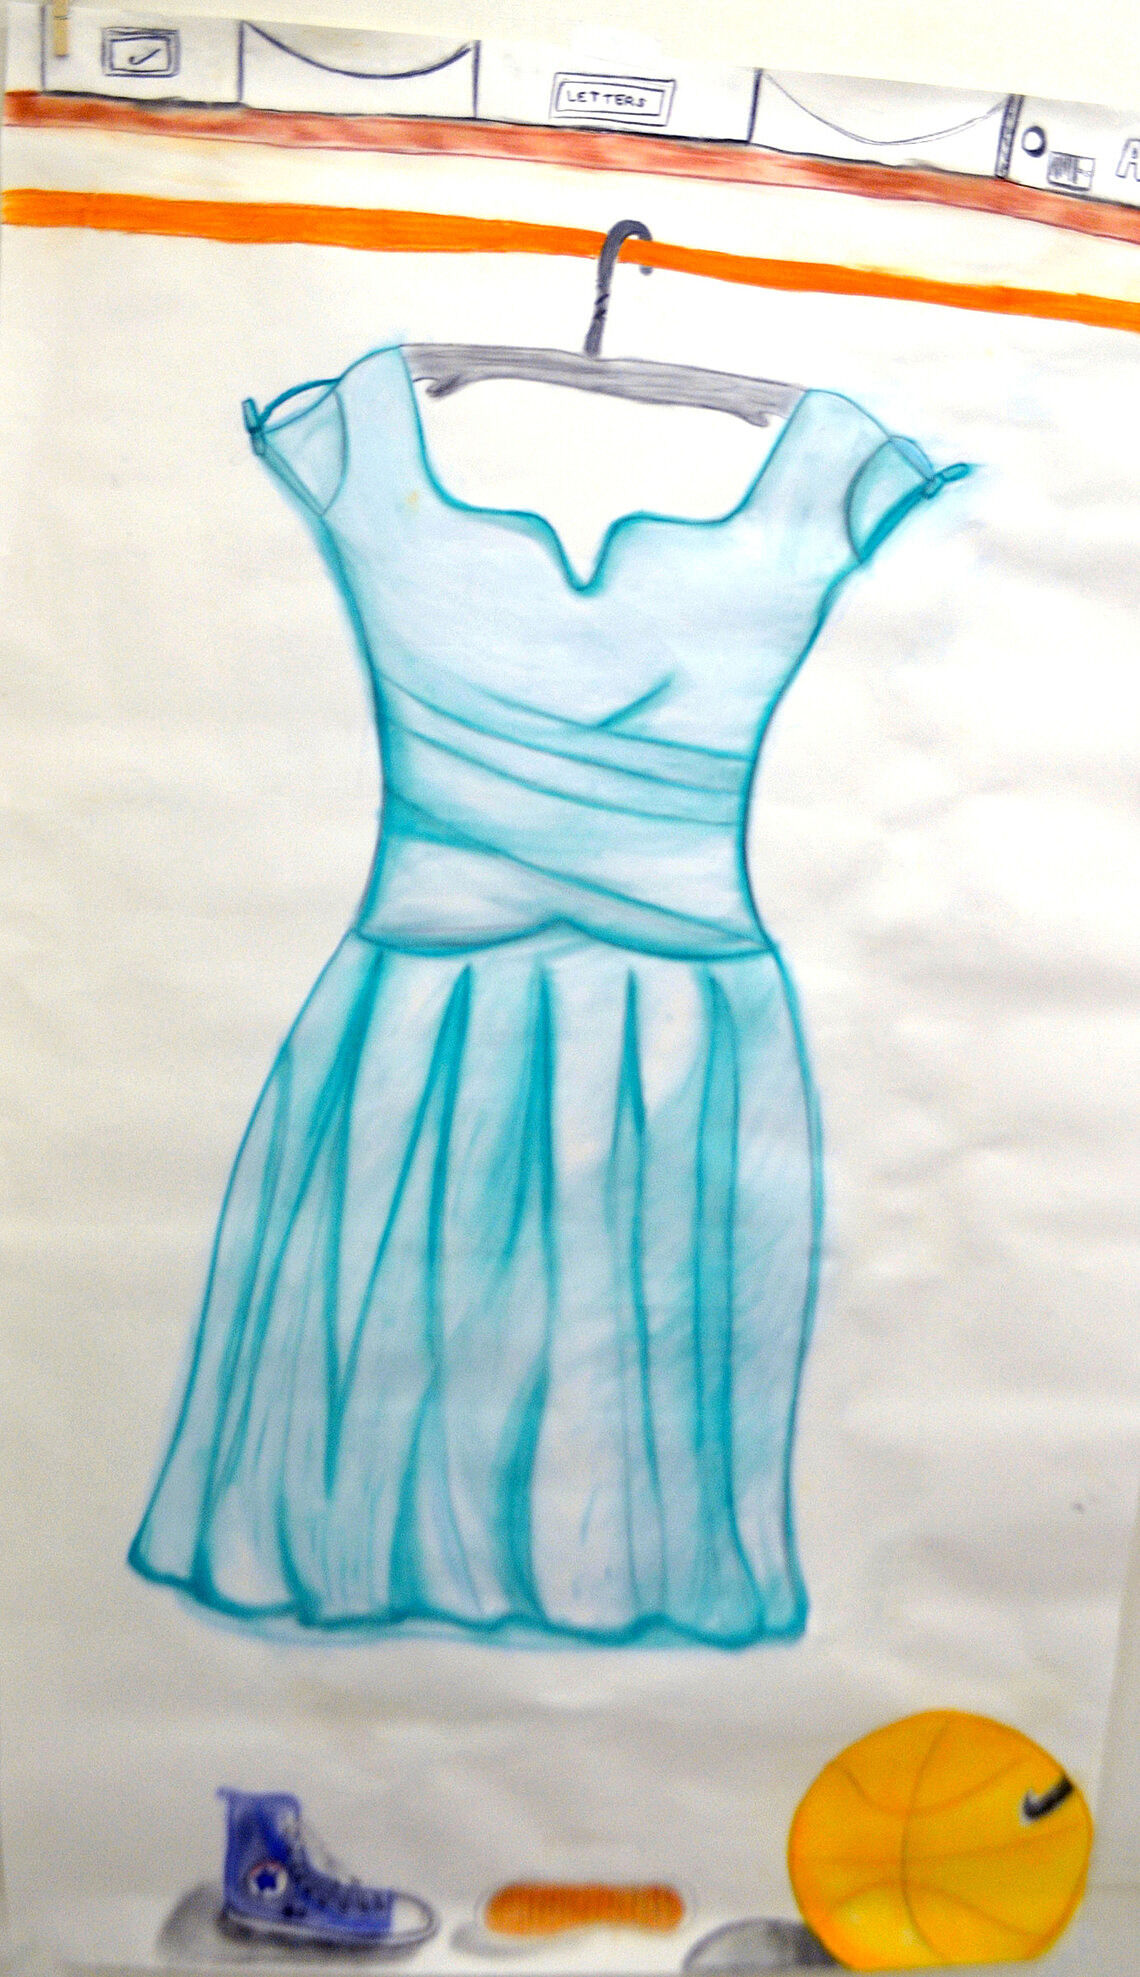 A drawing of a blue dress hanging on rack.